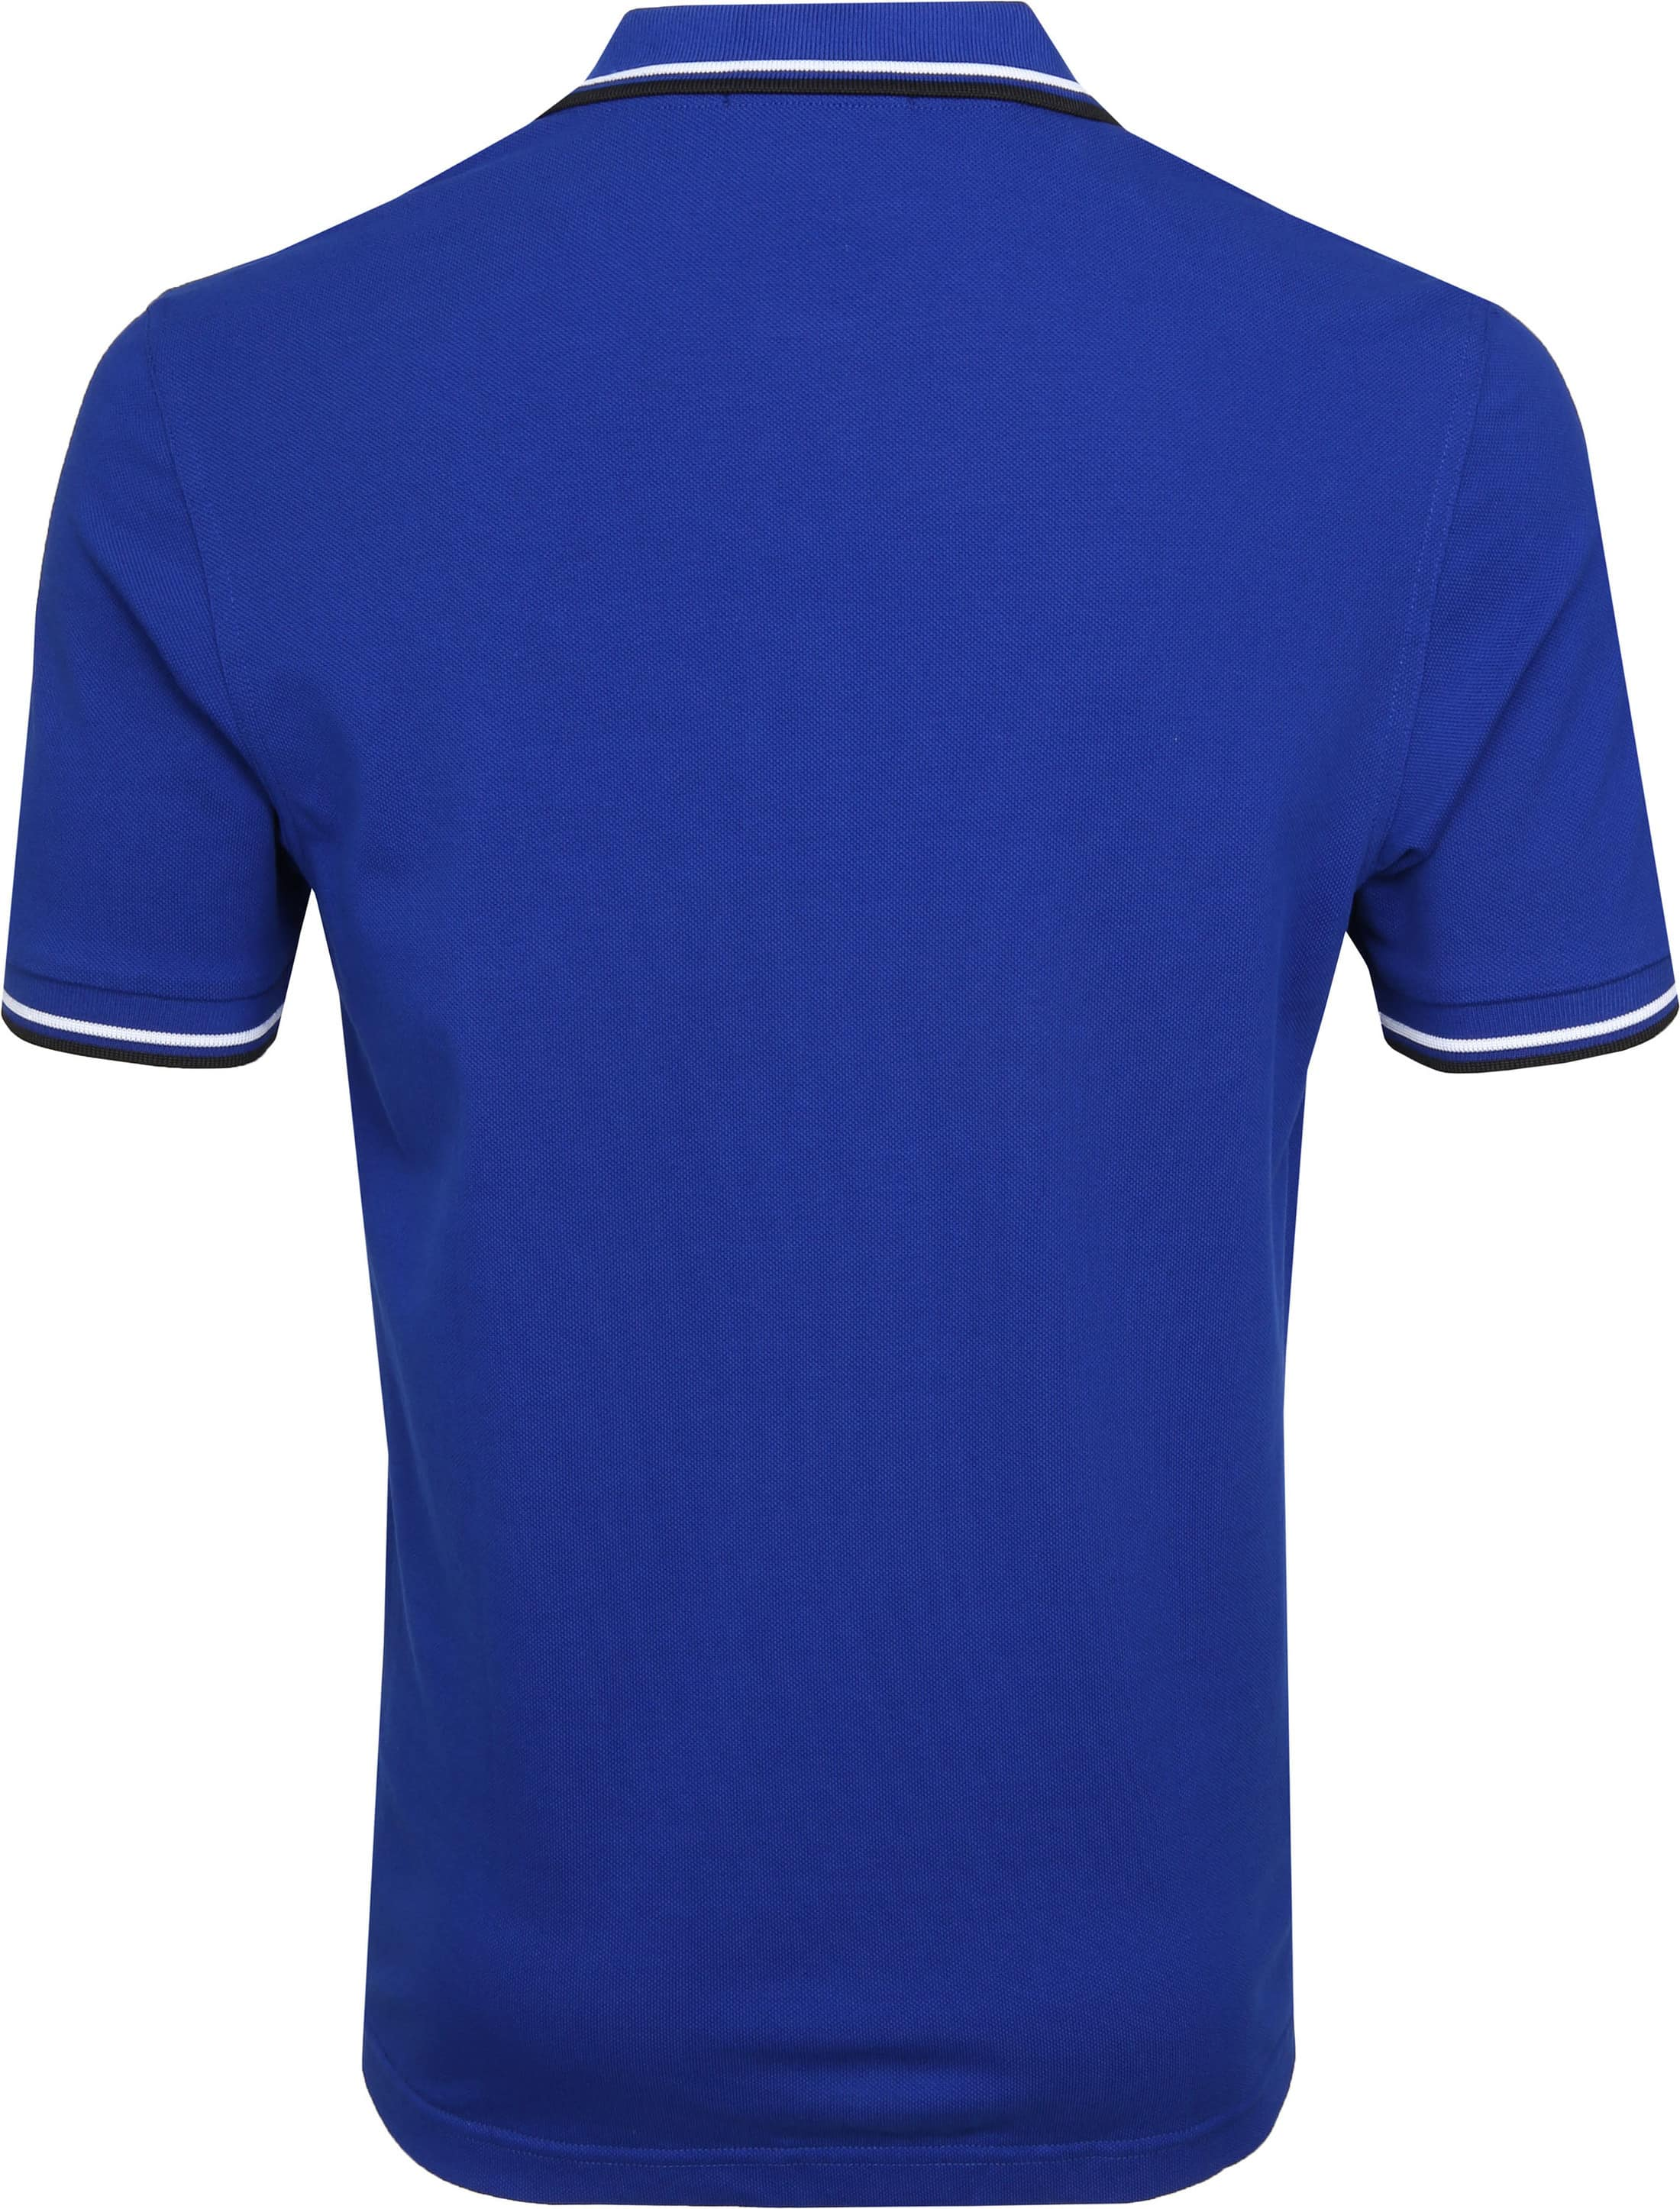 Fred Perry Poloshirt Blue I88 foto 3